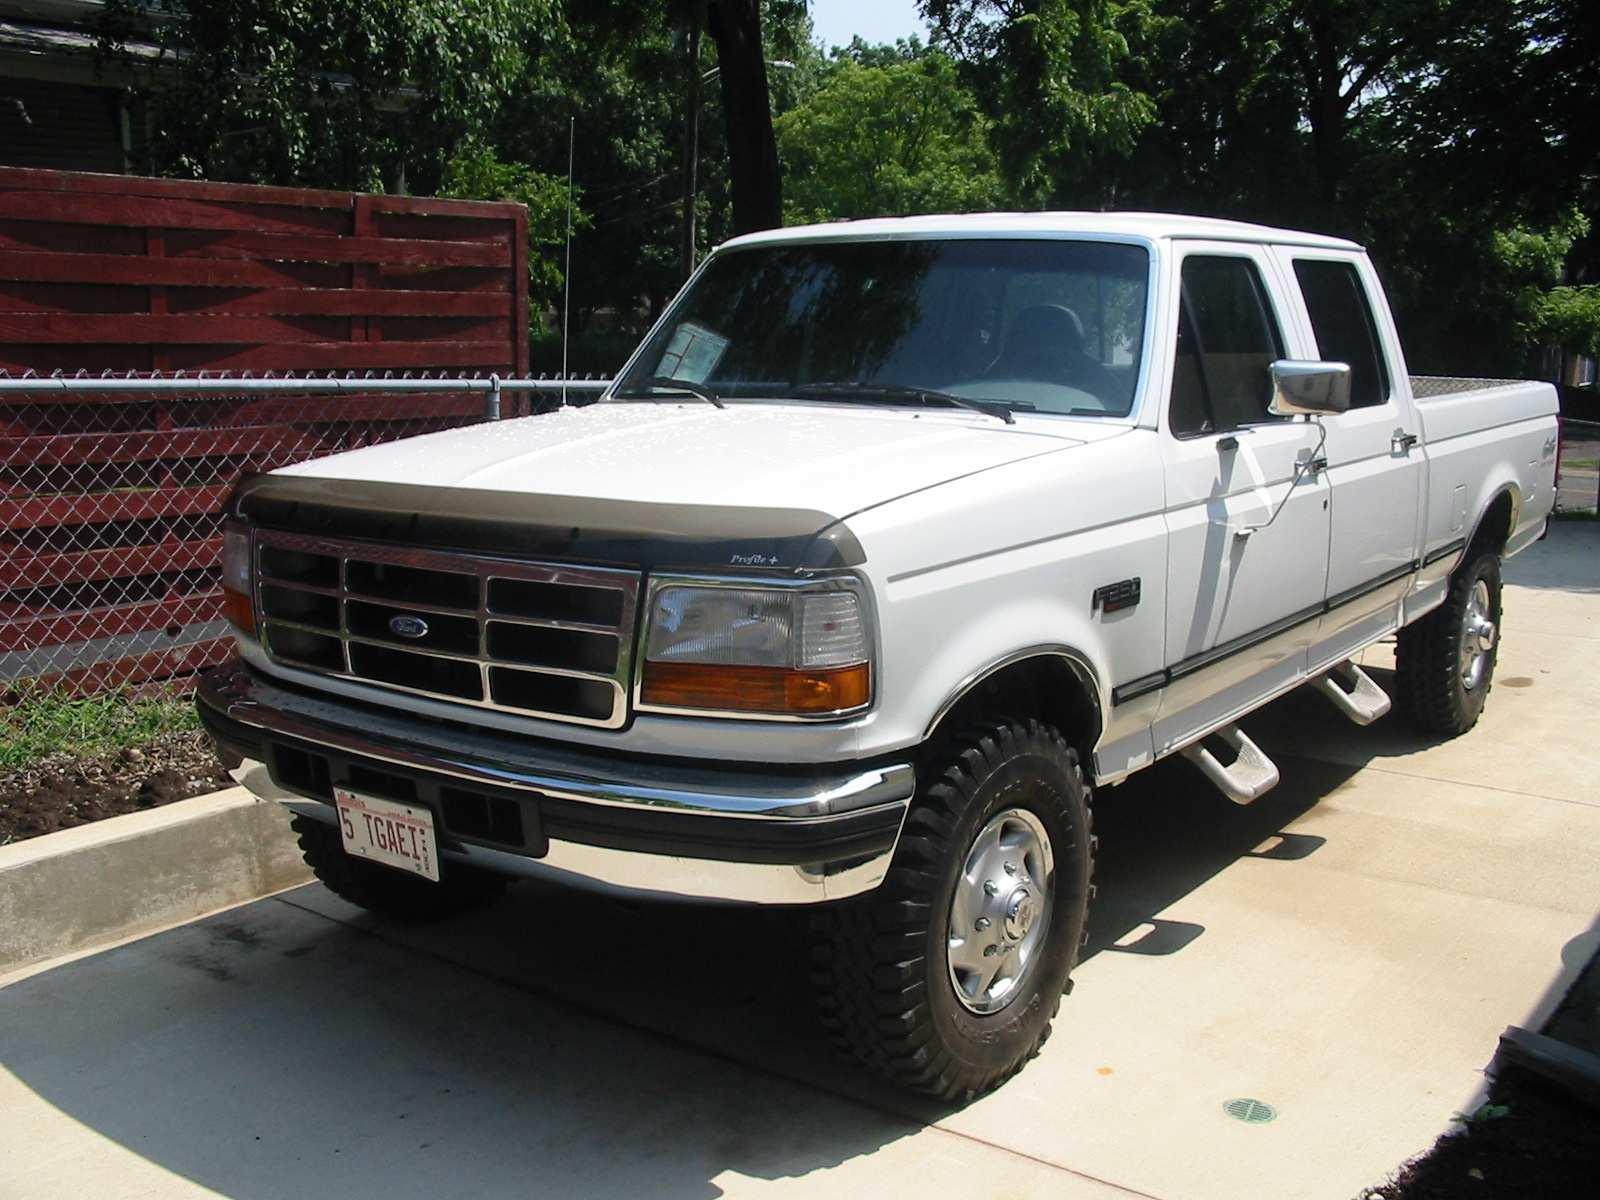 1996 Ford F 350 Overview Cargurus 1954 Chevy Crew Cab Picture Of 250 4 Dr Xlt 4wd Lb Hd